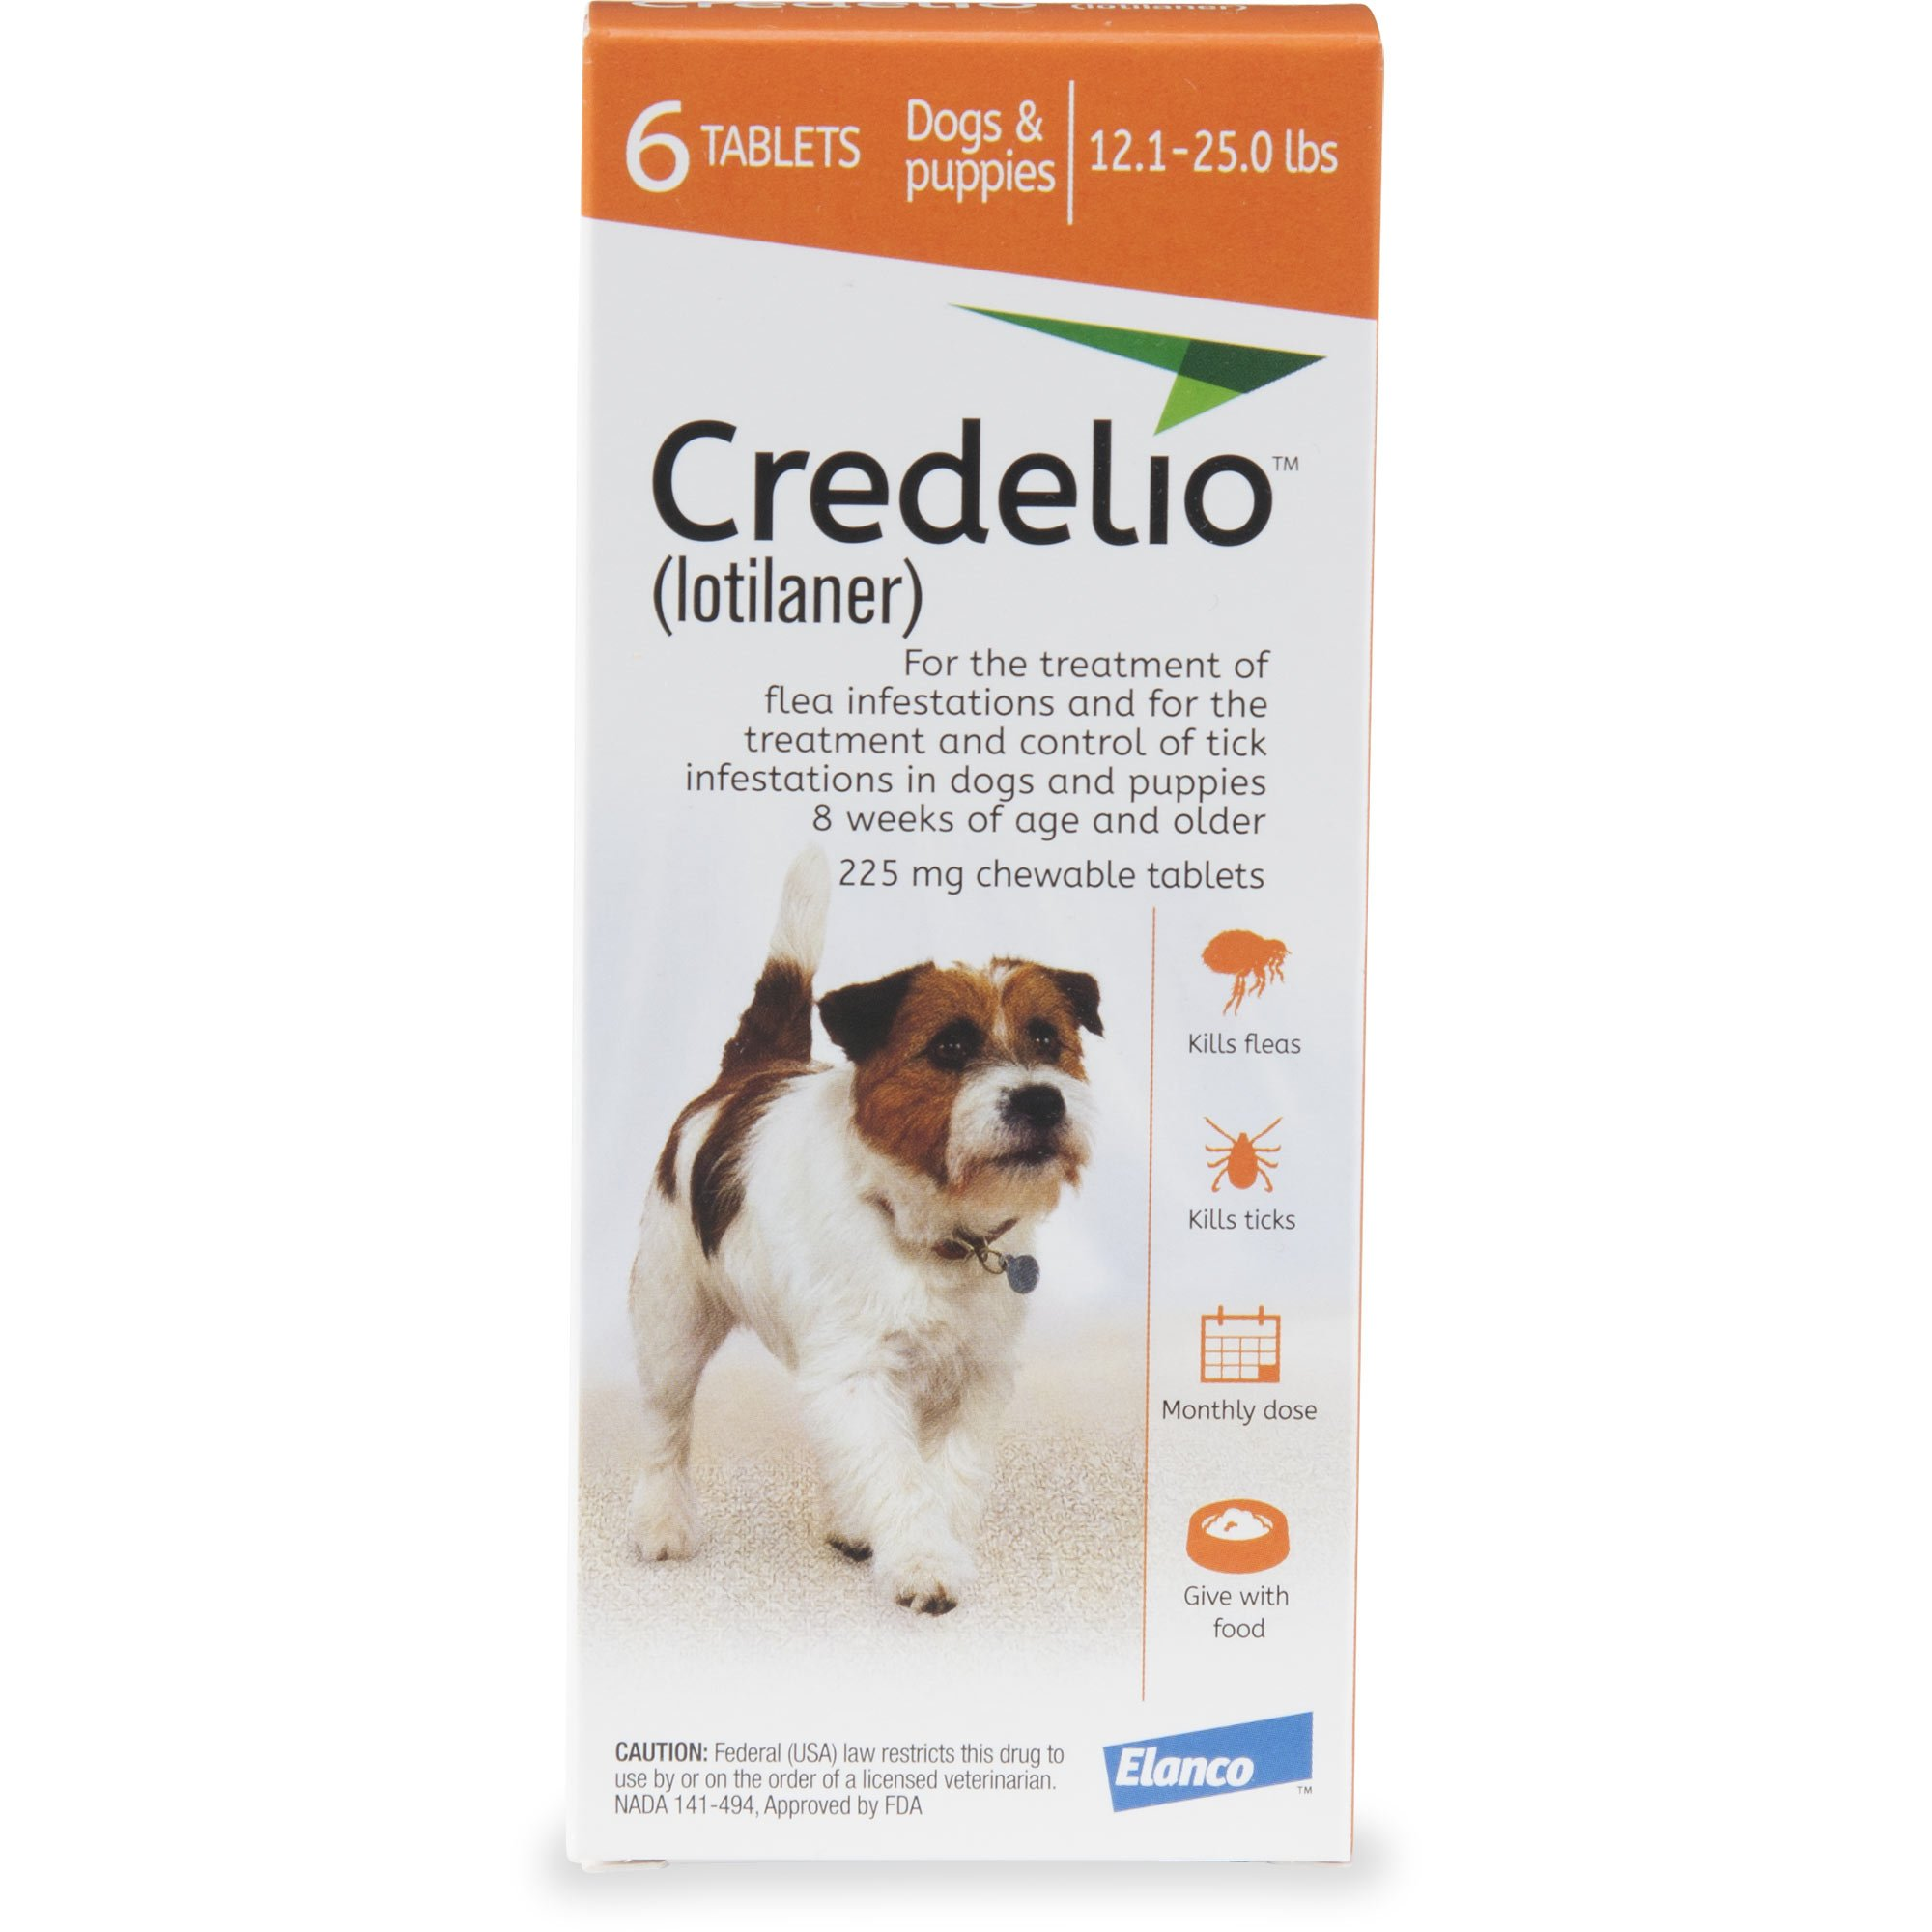 Credelio Chewable Tablets For Dogs 12 1 25 Lbs Orange 6 Pack Fleas Flea Tick Brown Dog Tick